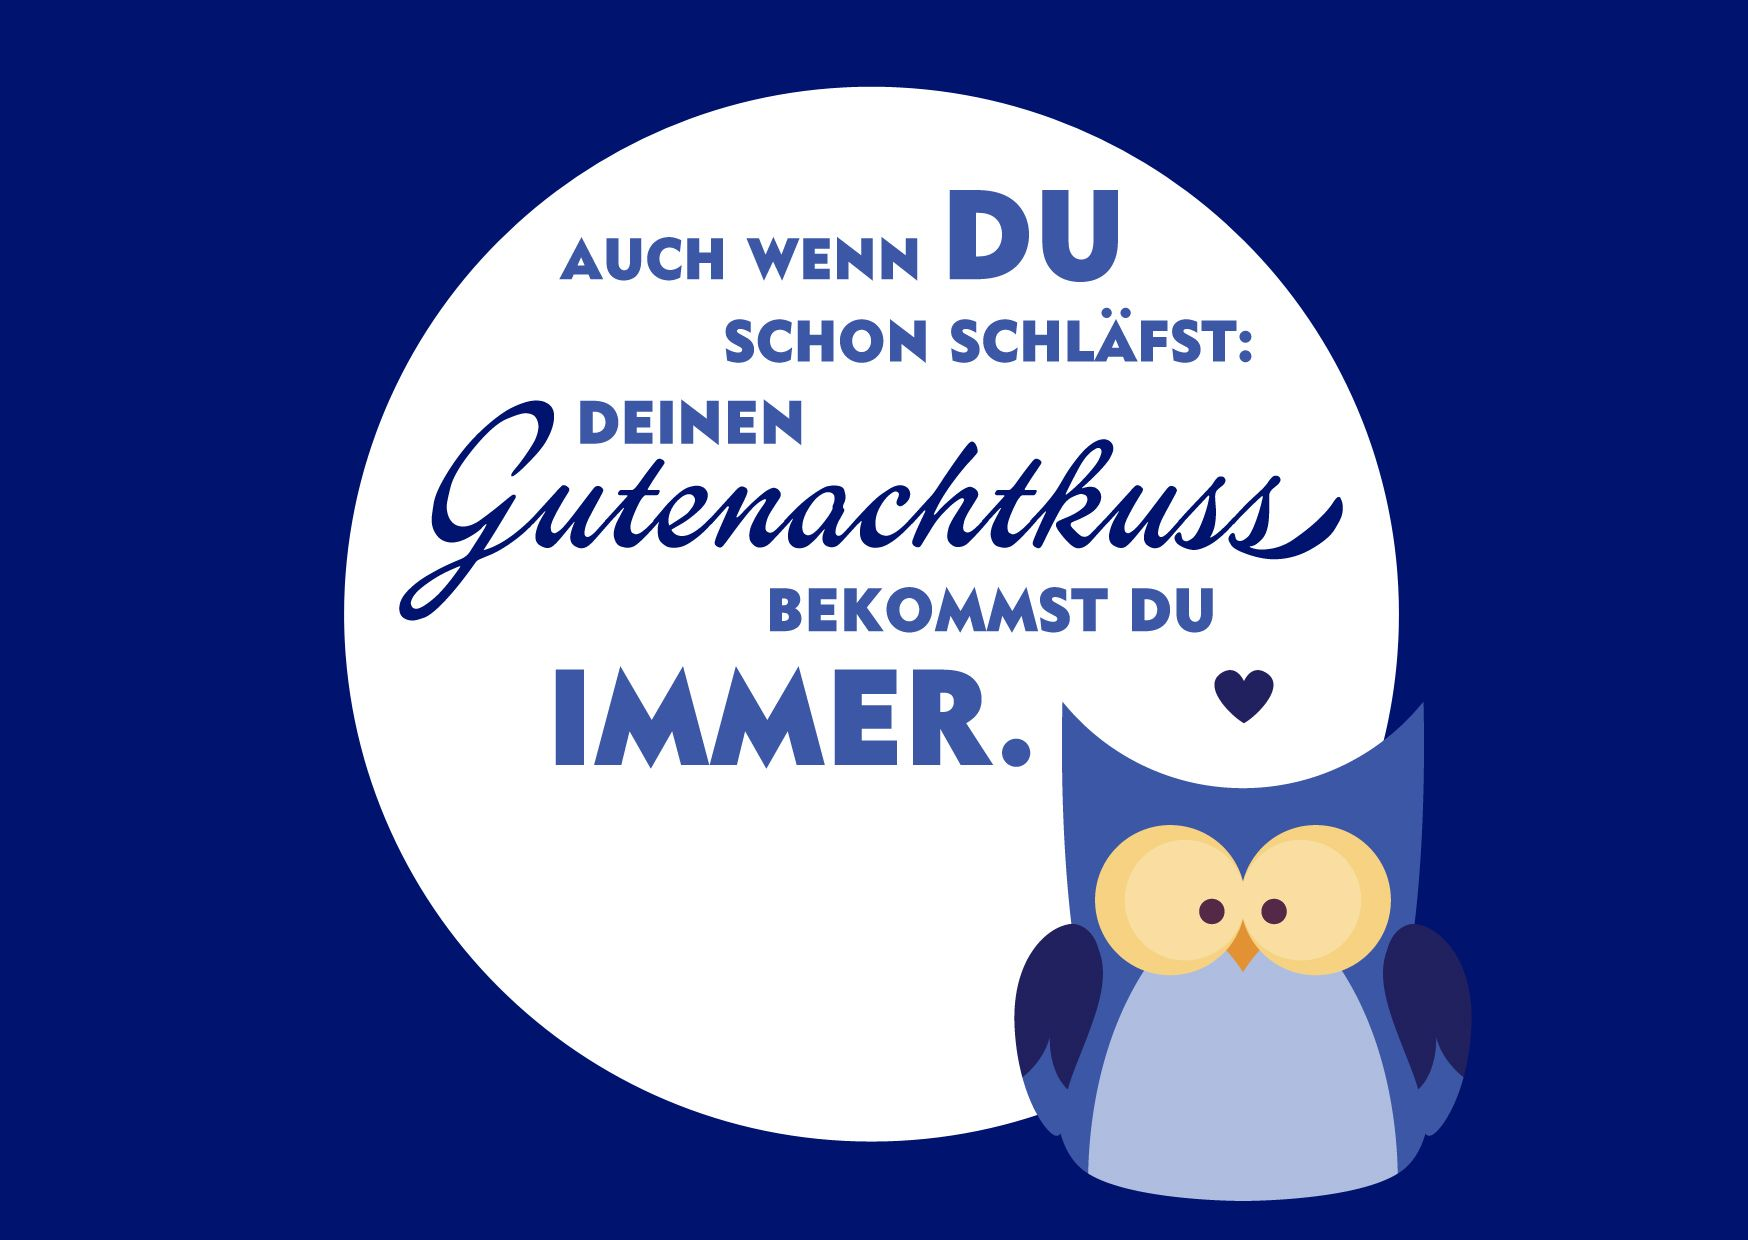 1000+ images about gute nacht on pinterest | taps, search and good